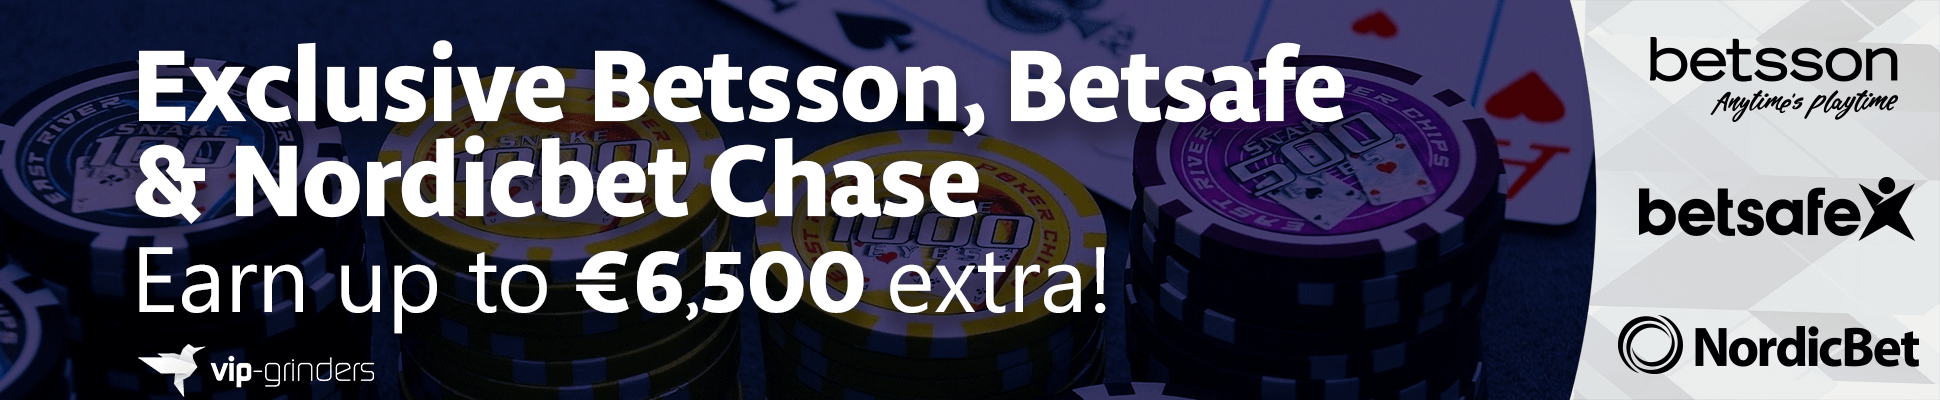 Exclusive Betsson, Betsafe Nordicbet Chase 1940